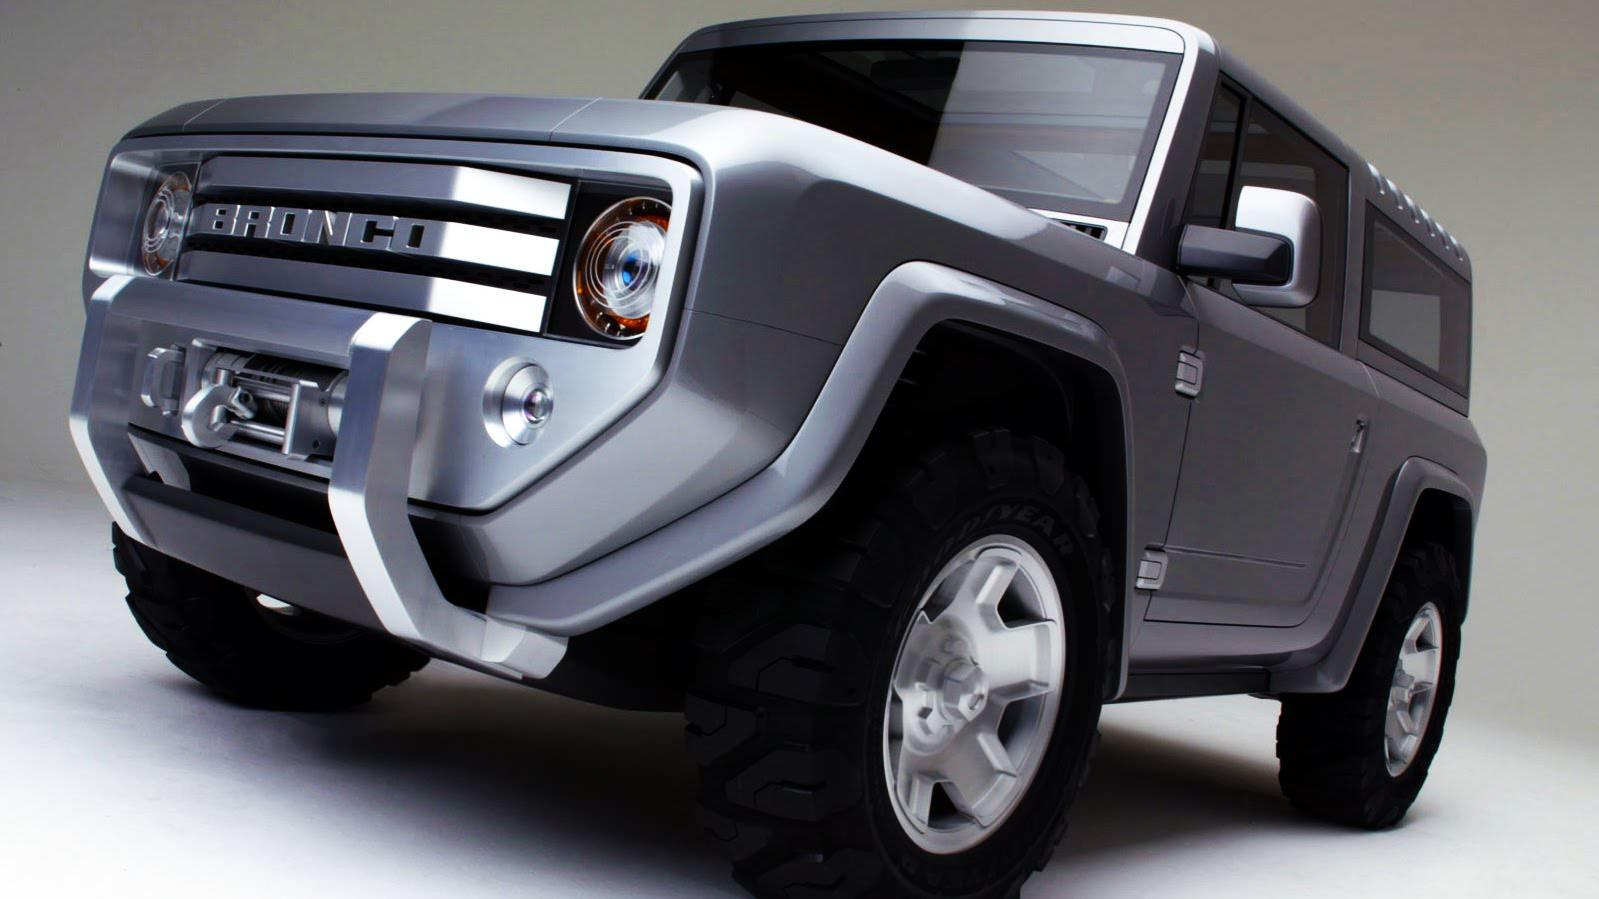 2016 Ford Bronco Wallpapers Download #11912 - Download Page ...